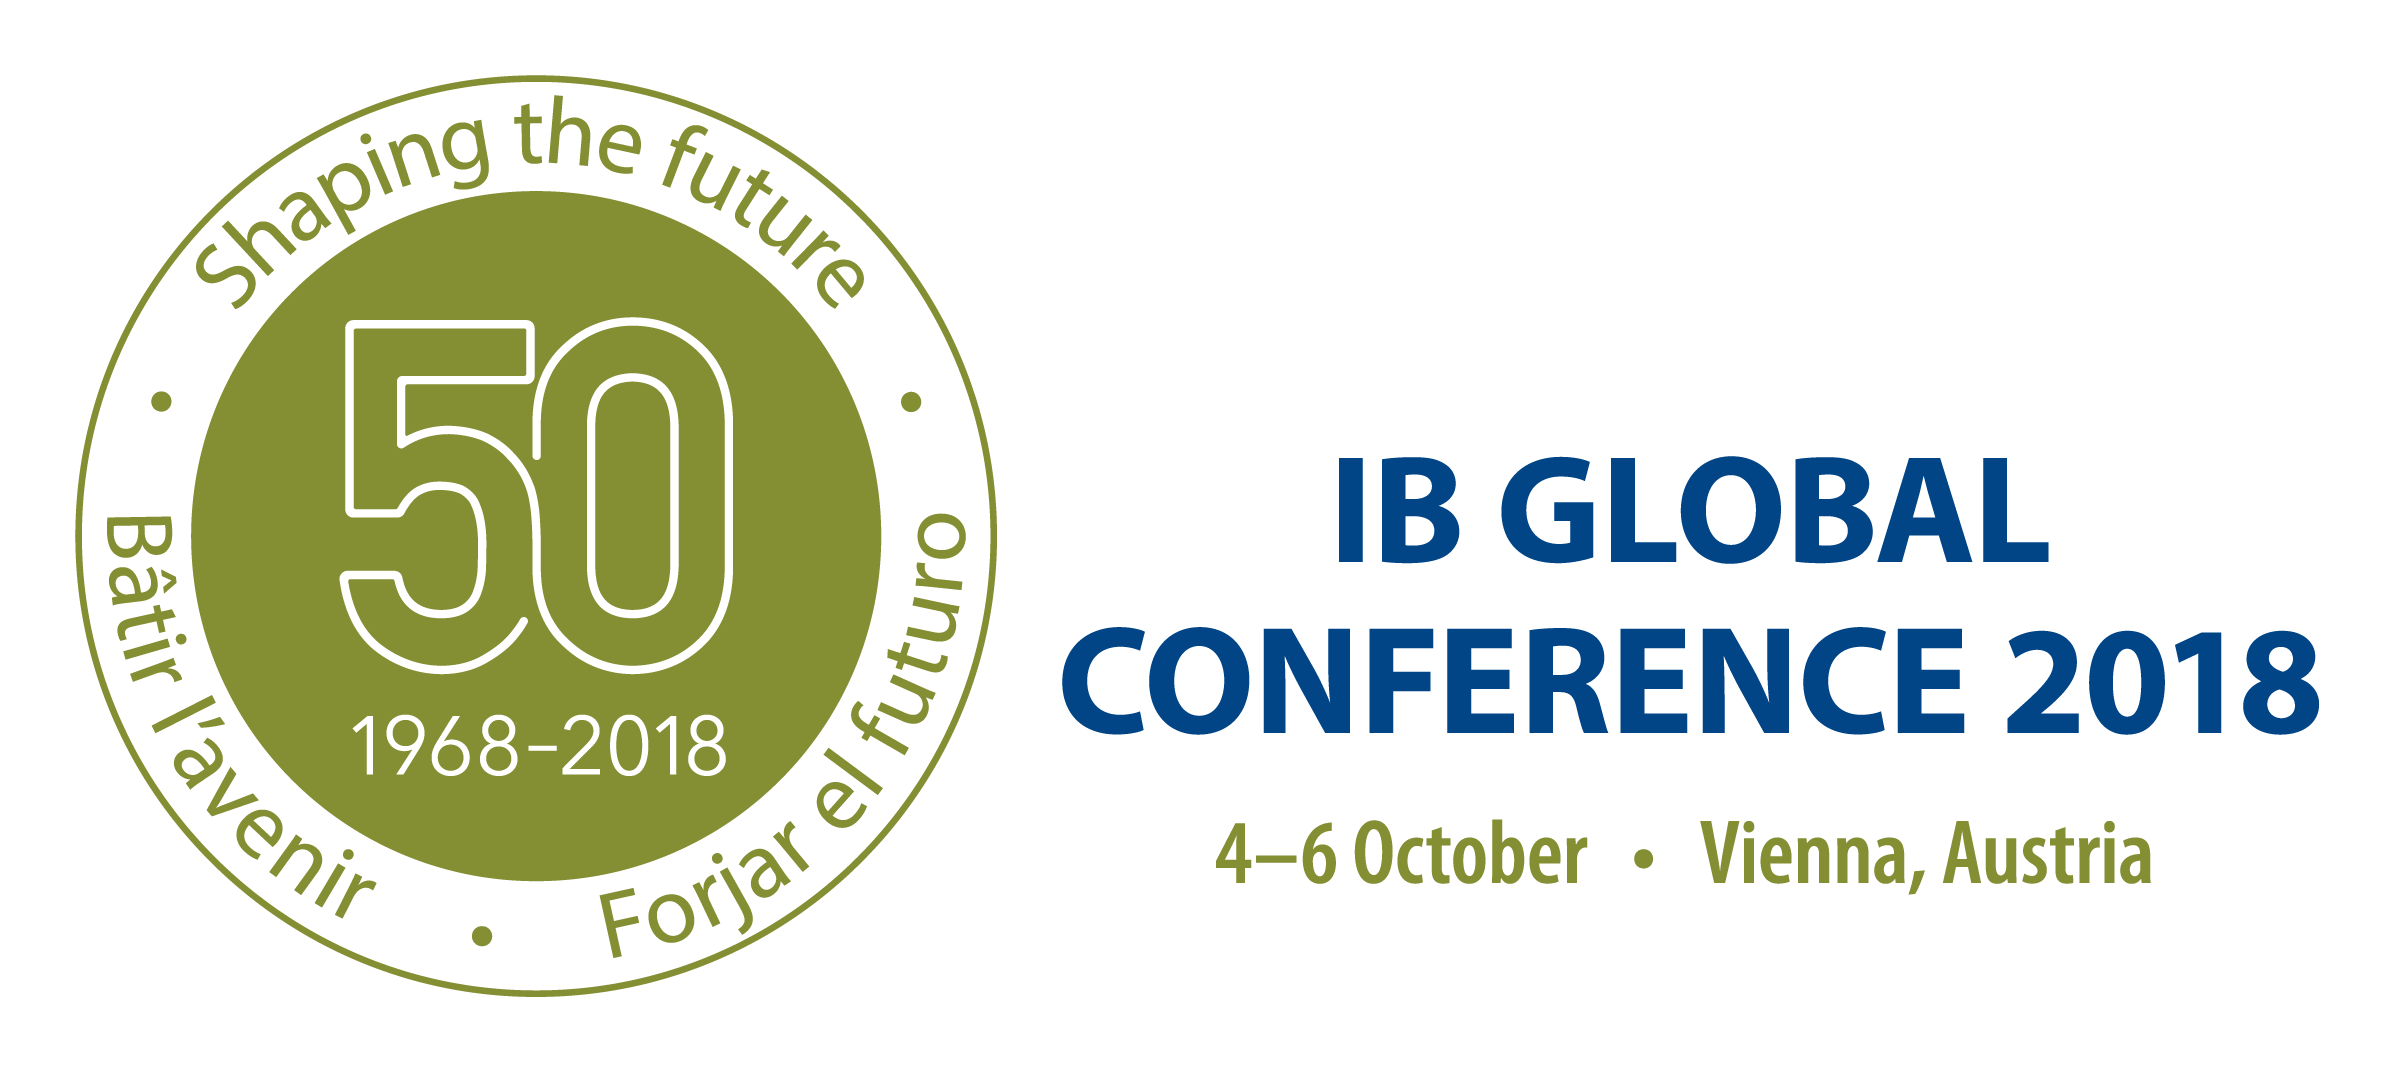 IB Global Conference, Vienna, Austria, 2018